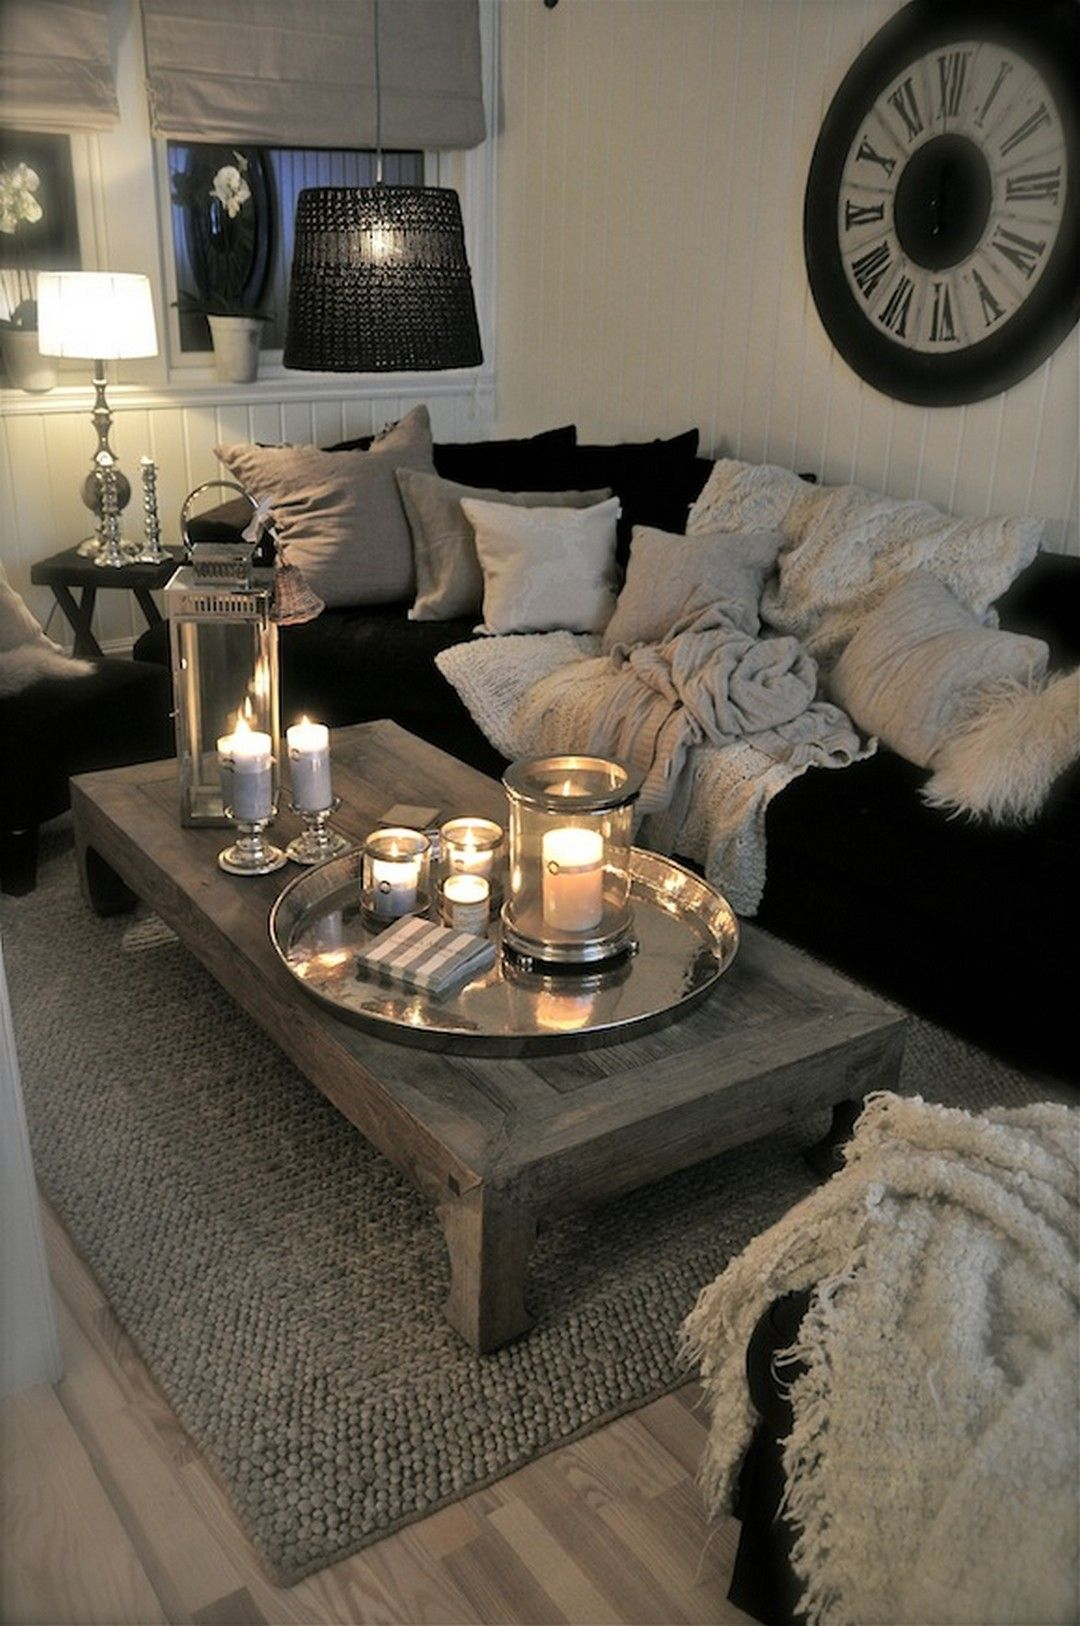 99 easy diy first apartement decorating ideas easy Decorating my first apartment